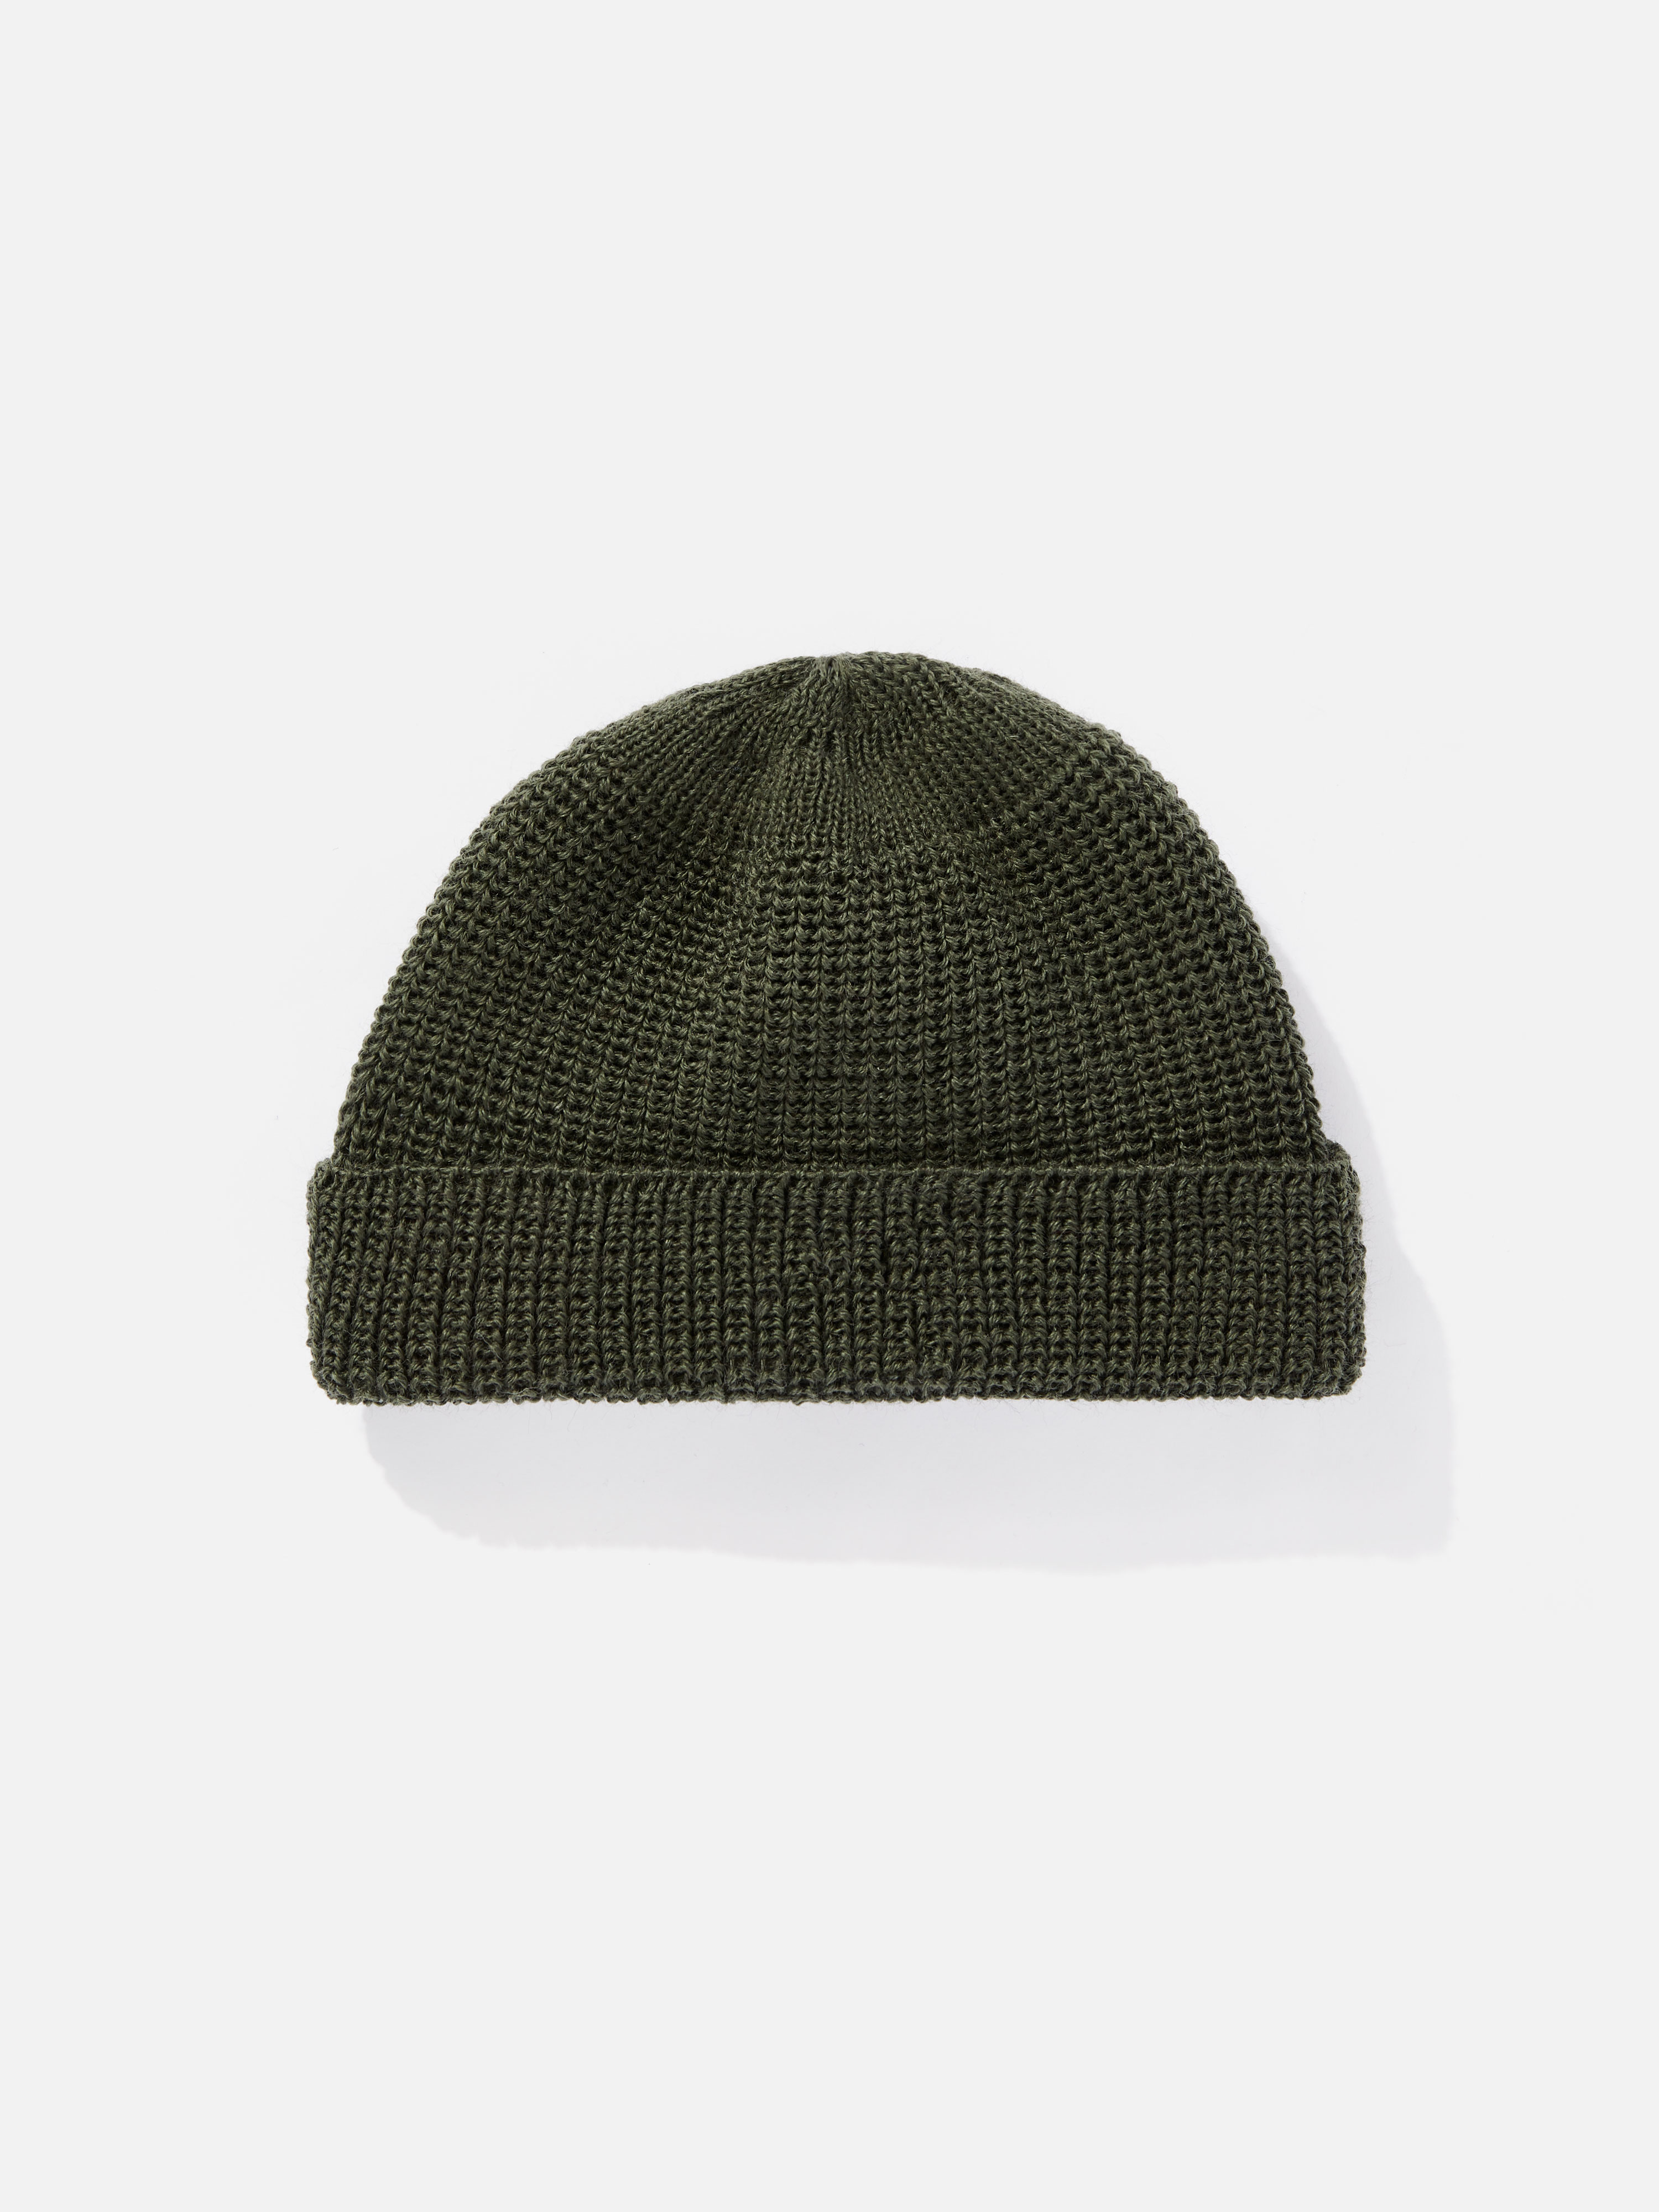 mki virgin wool watch cap short body 2